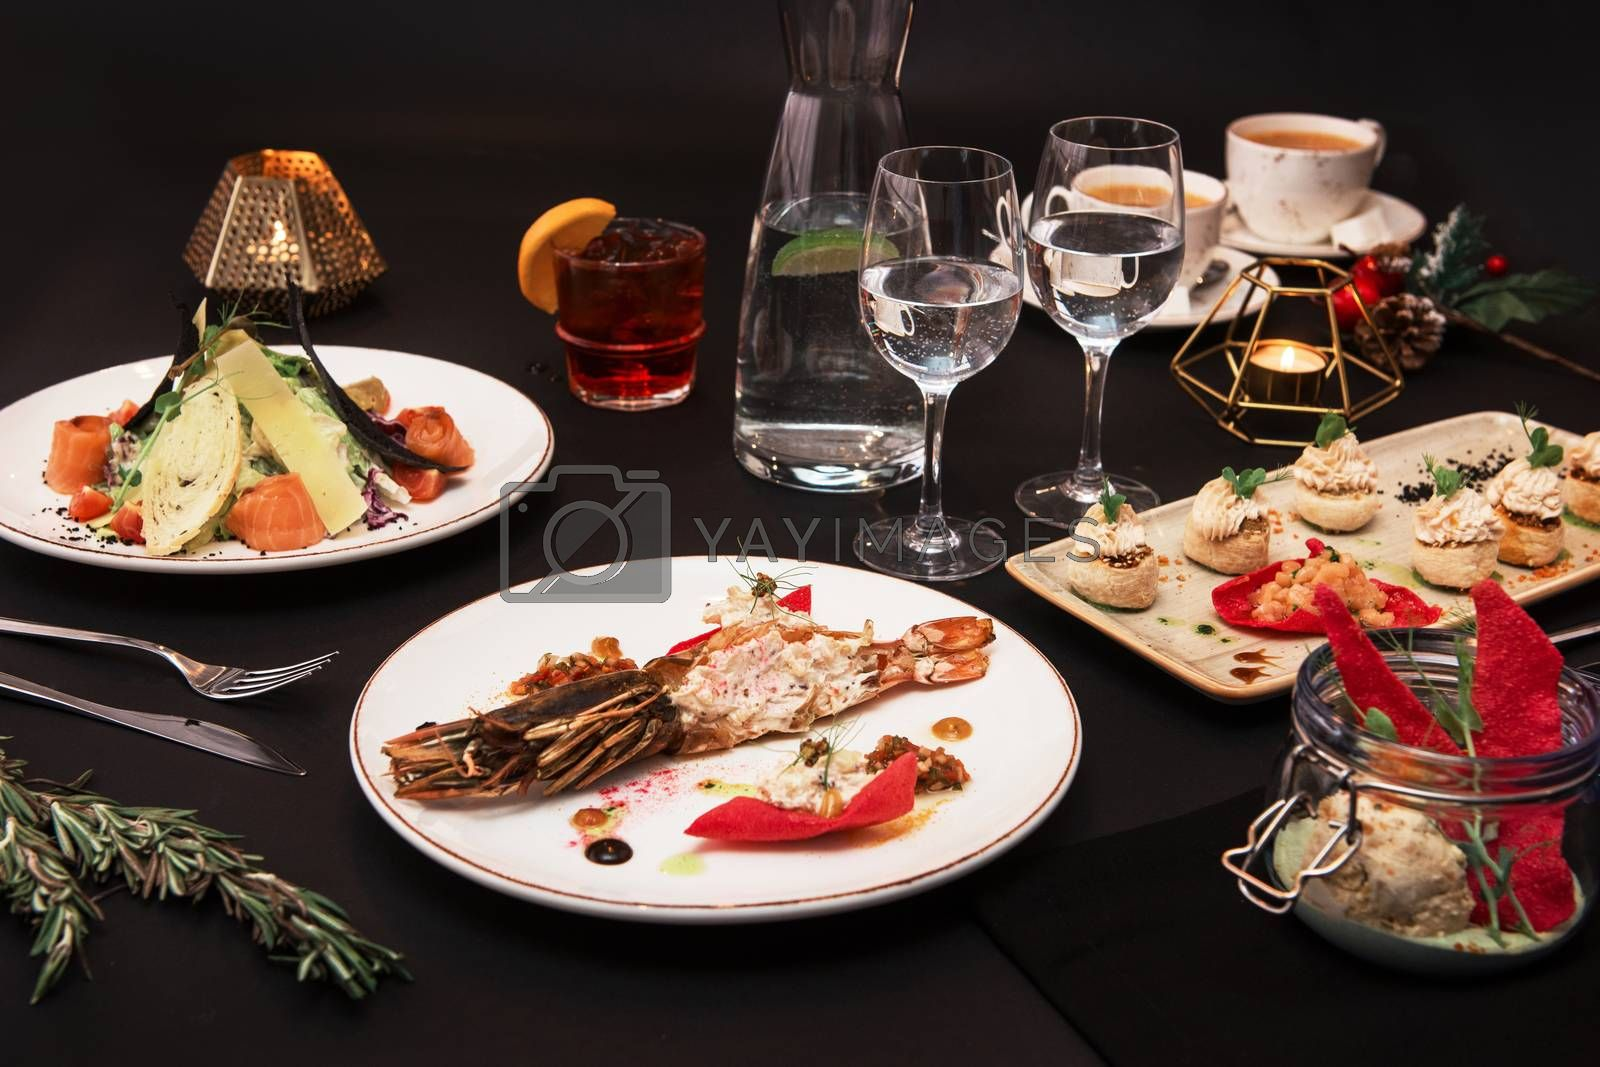 Tasty restaurant dishes: Cooked and stuffed crayfish, salad, appetizers, and crayfish ice-cream